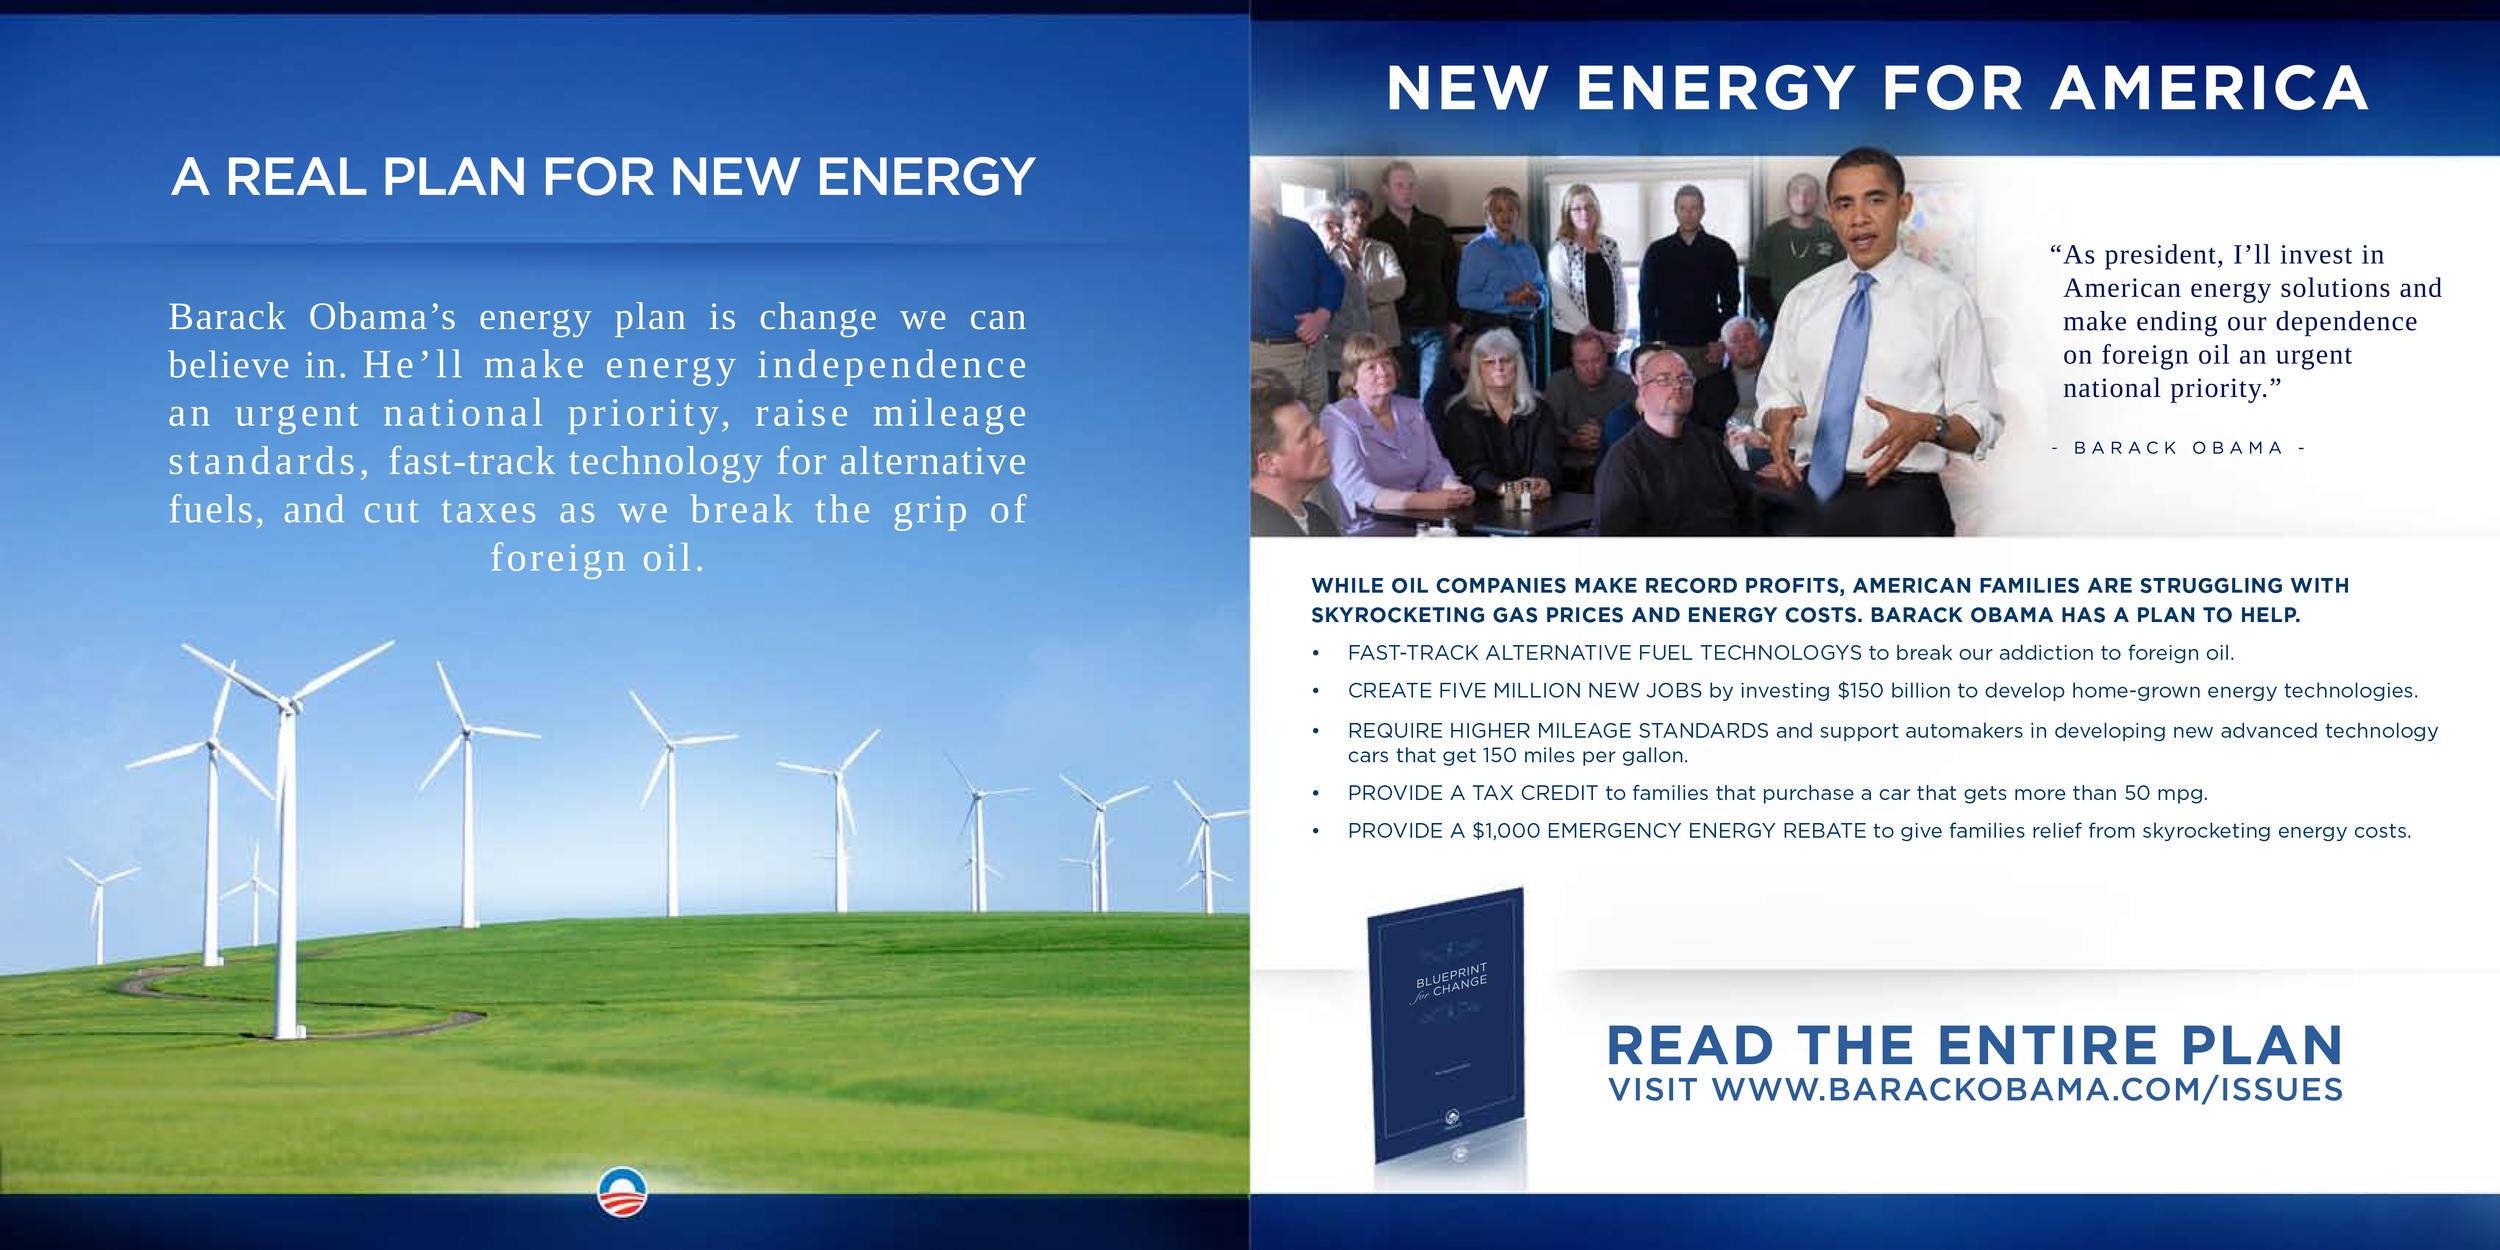 OFA08_New_Energy Spread.jpg